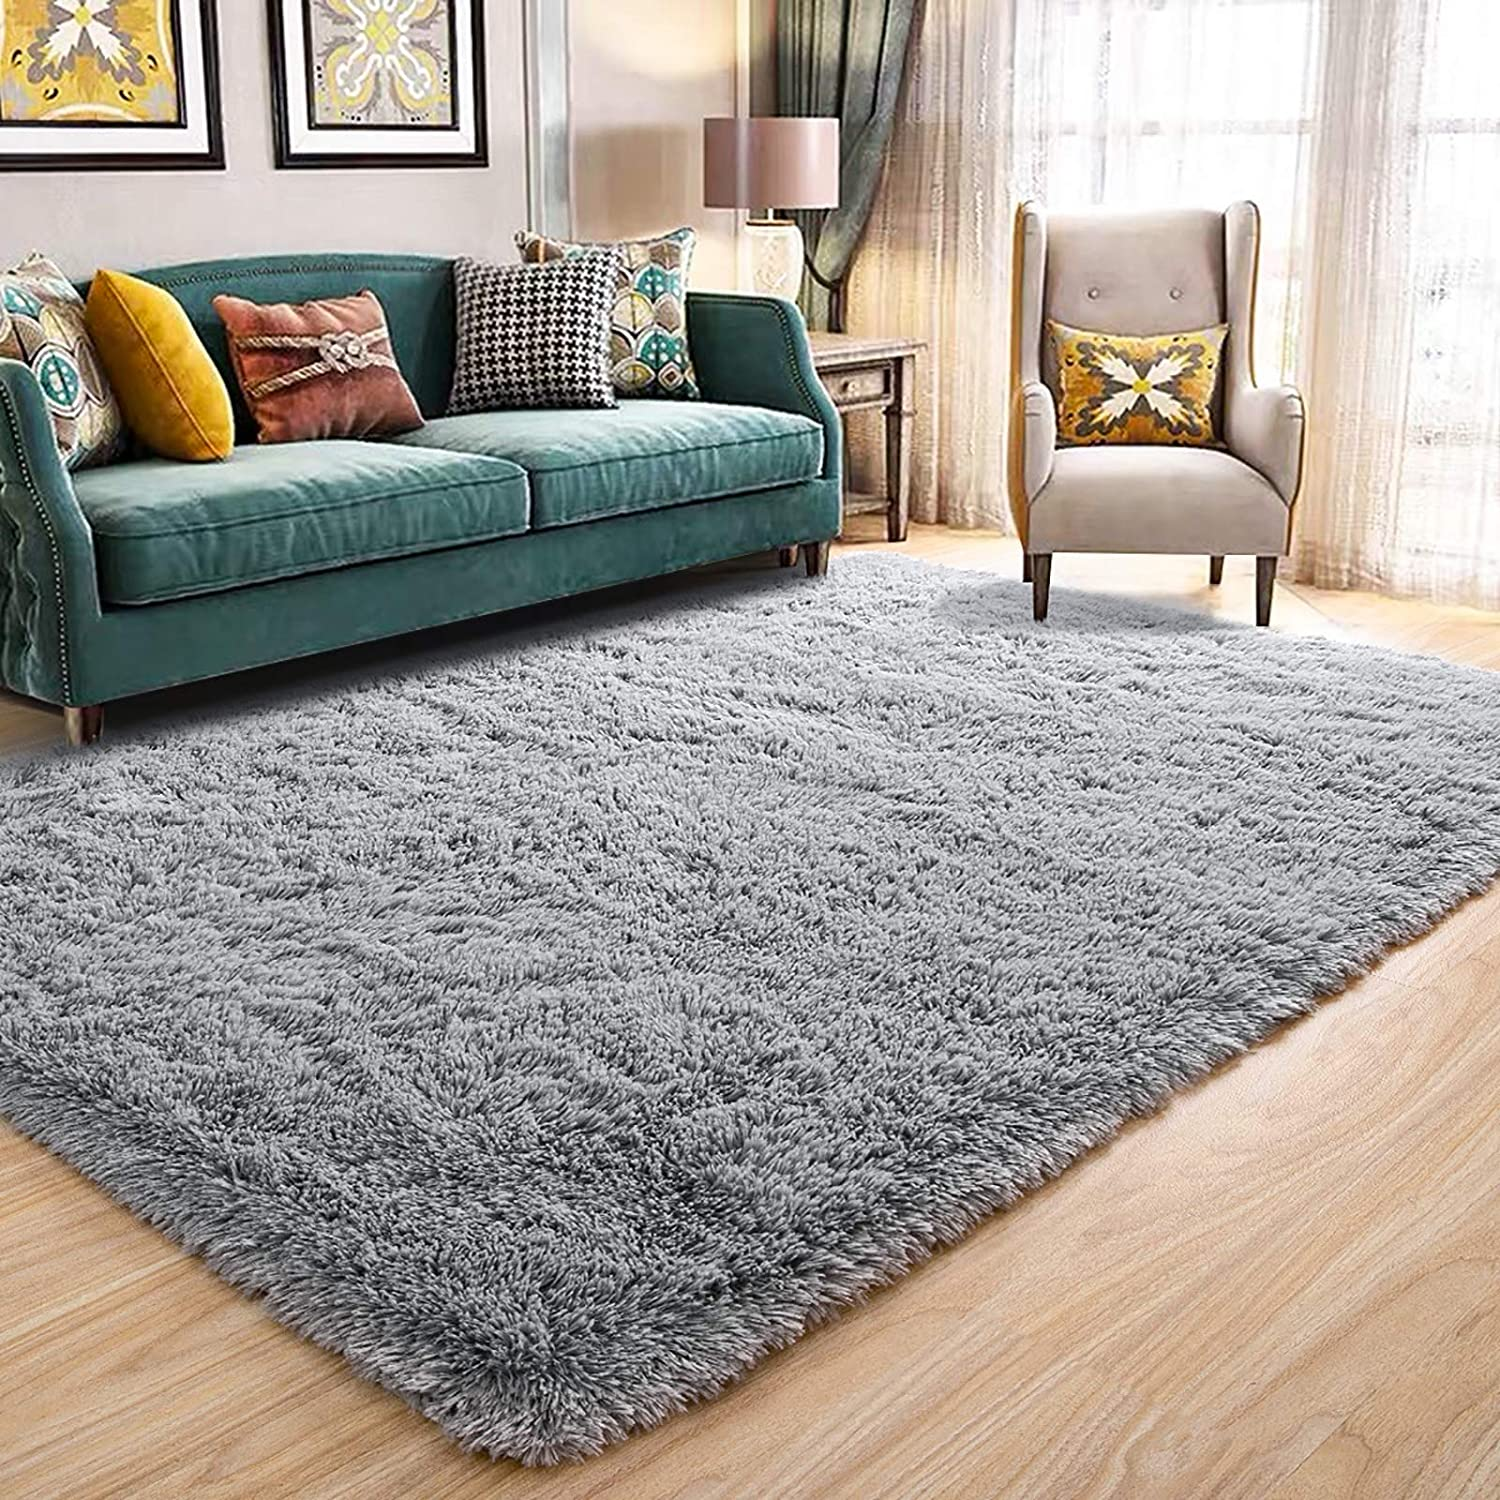 Amazon Com Maxsoft Fuzzy Rugs For Living Room Grey Shag Area Rugs For Bedroom 4 X 6 Feet Fluffy Room Carpets For Girls Kids Plush Furry Rugs For Nursery Bedside Floor Kitchen